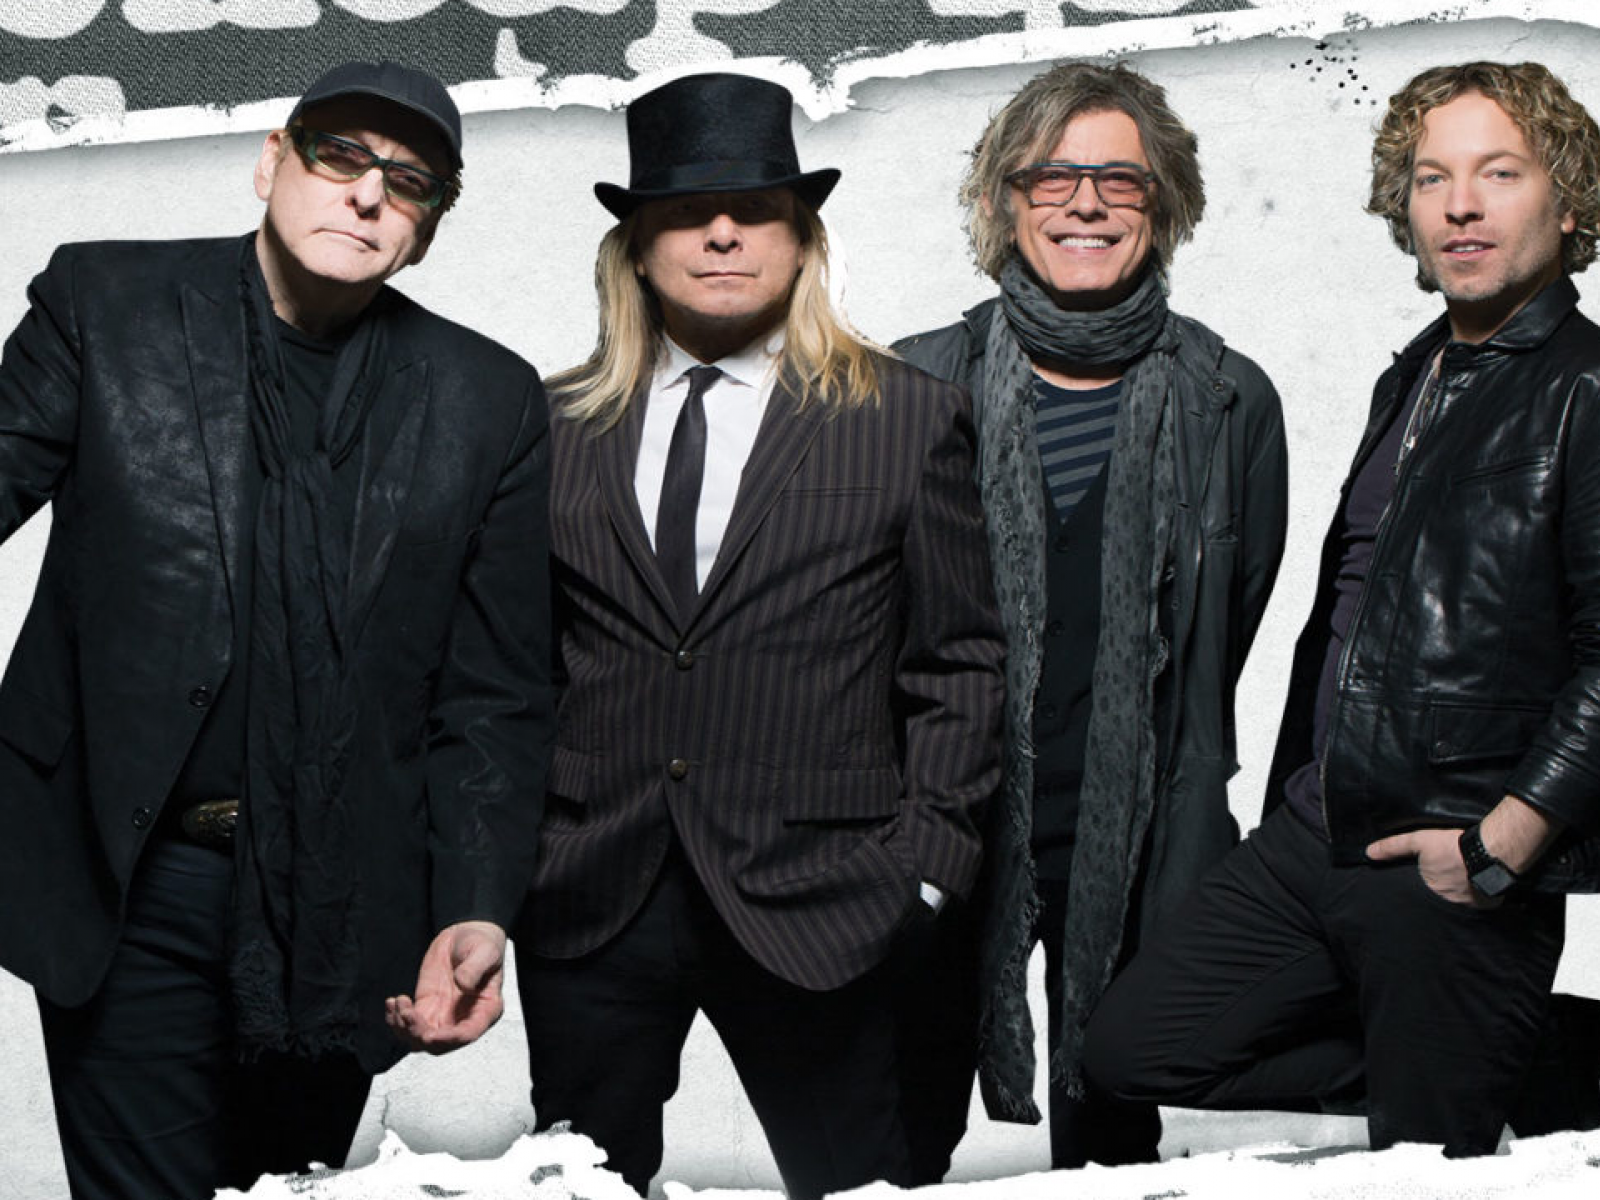 Main image for event titled Fleet Week: Military Appreciation Concert with Cheap Trick